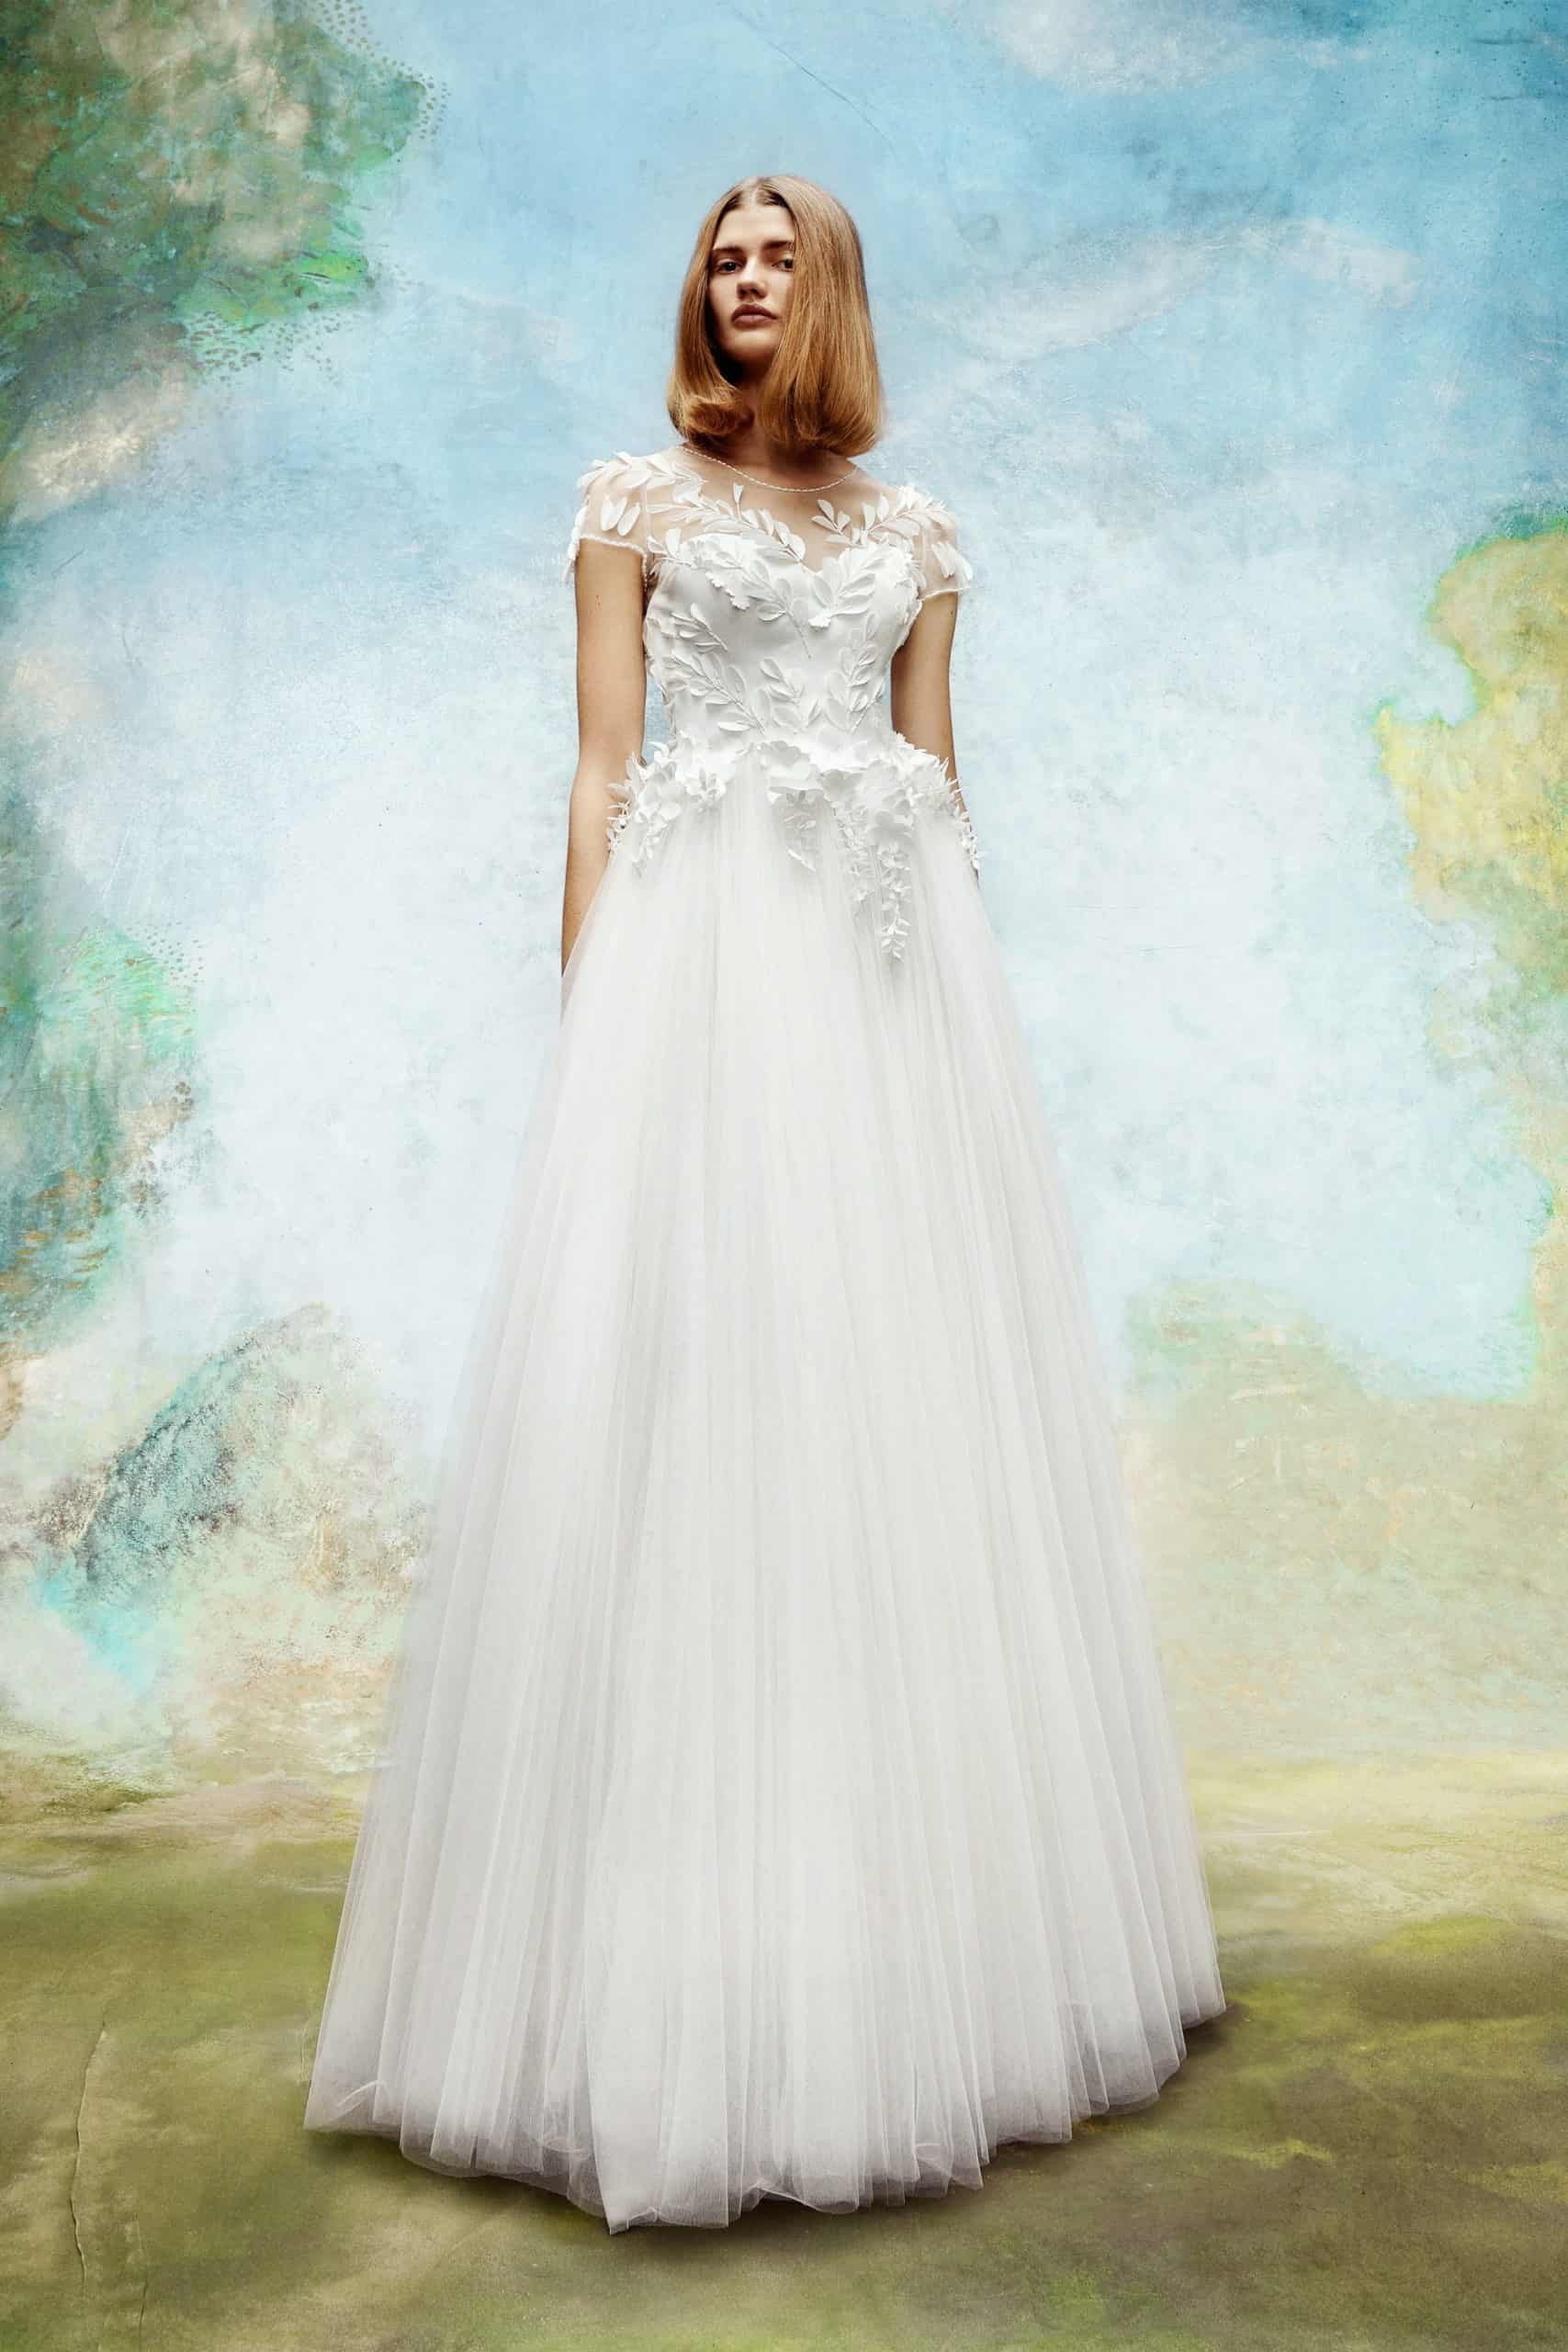 a-line wedding dress with lace top by Viktor and Rolf